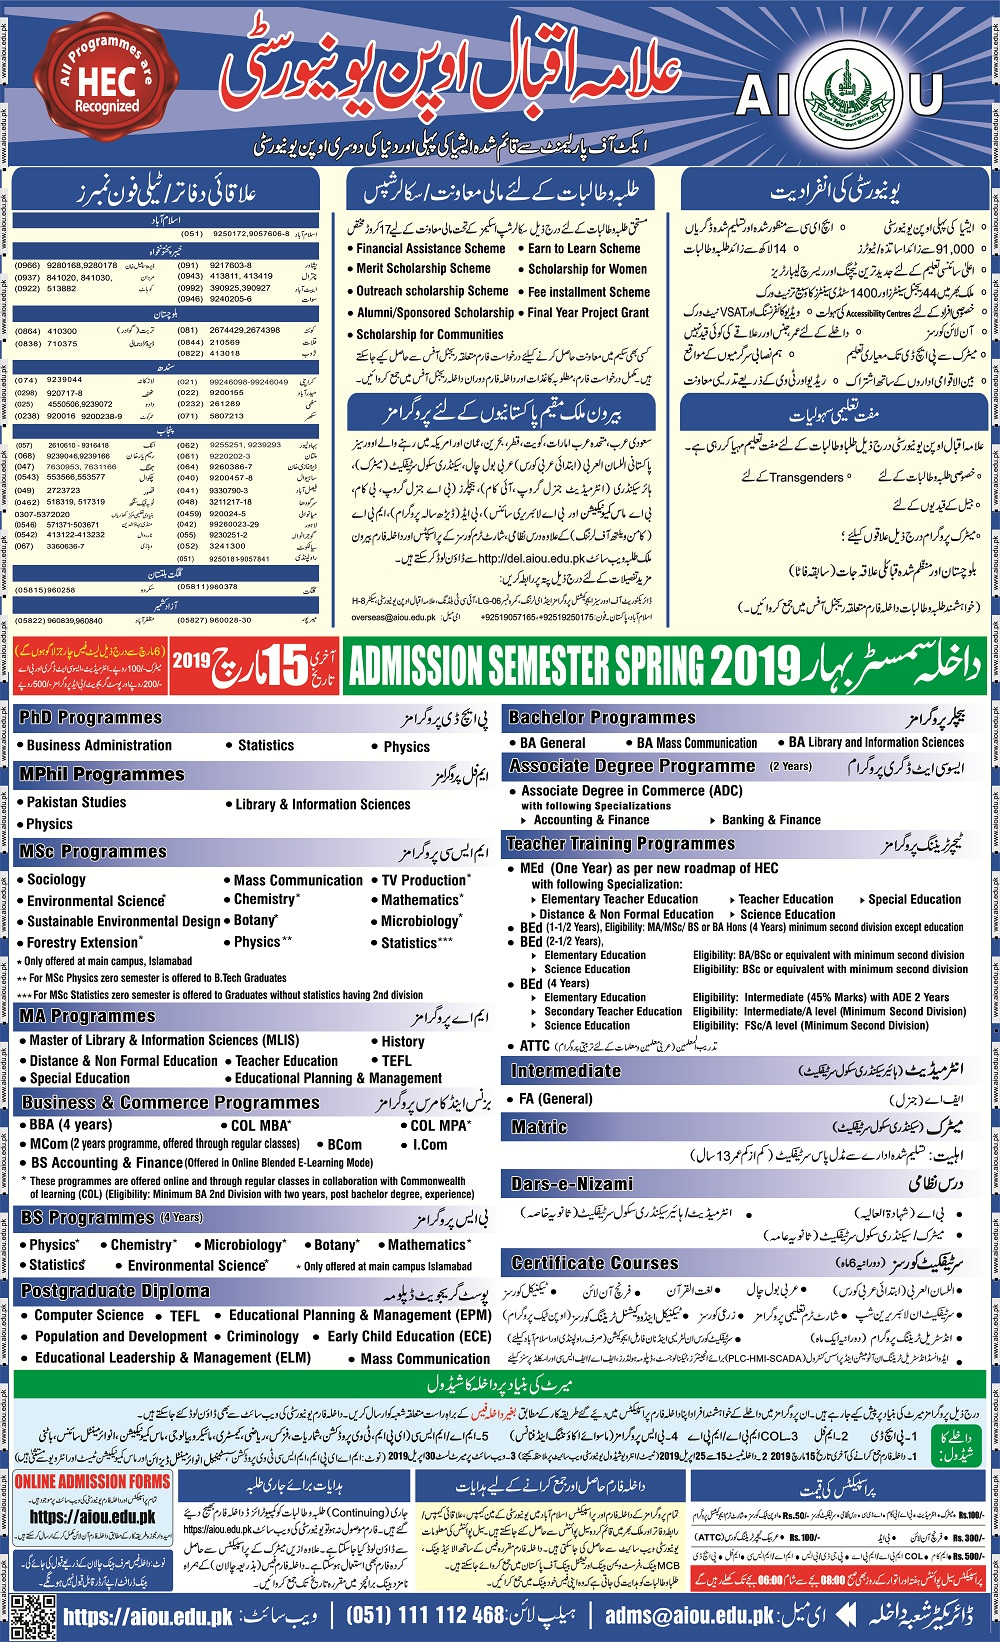 Allama Iqbal Open University Admissions 2019 aiou Online